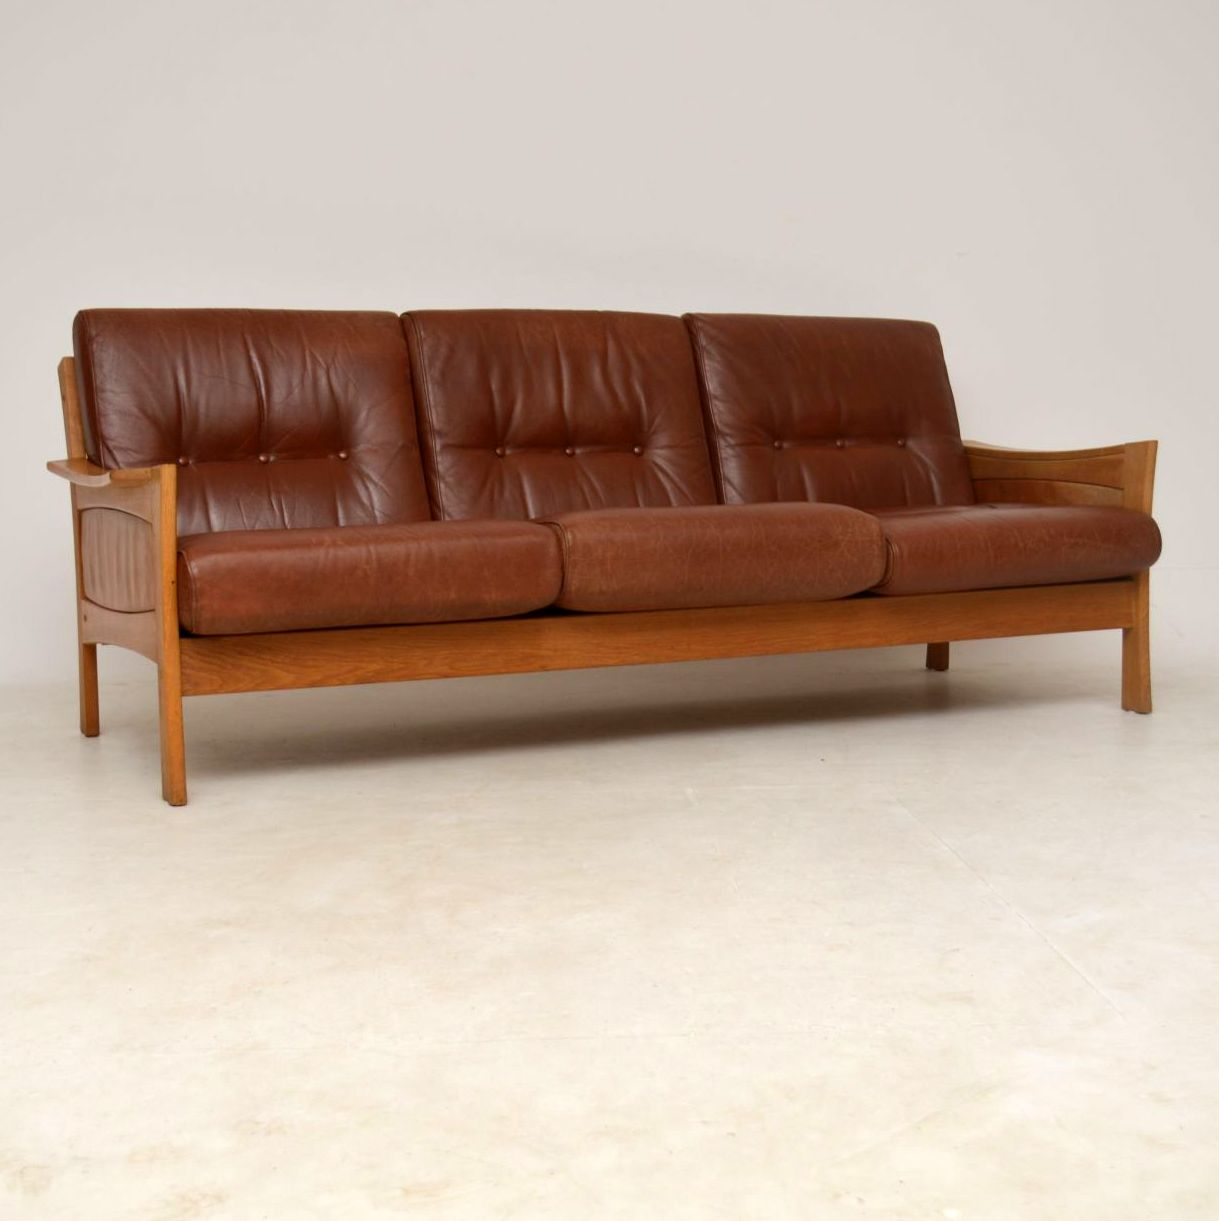 secondhand leather sofas 5022 polaris sectional sofa second hand brown danish